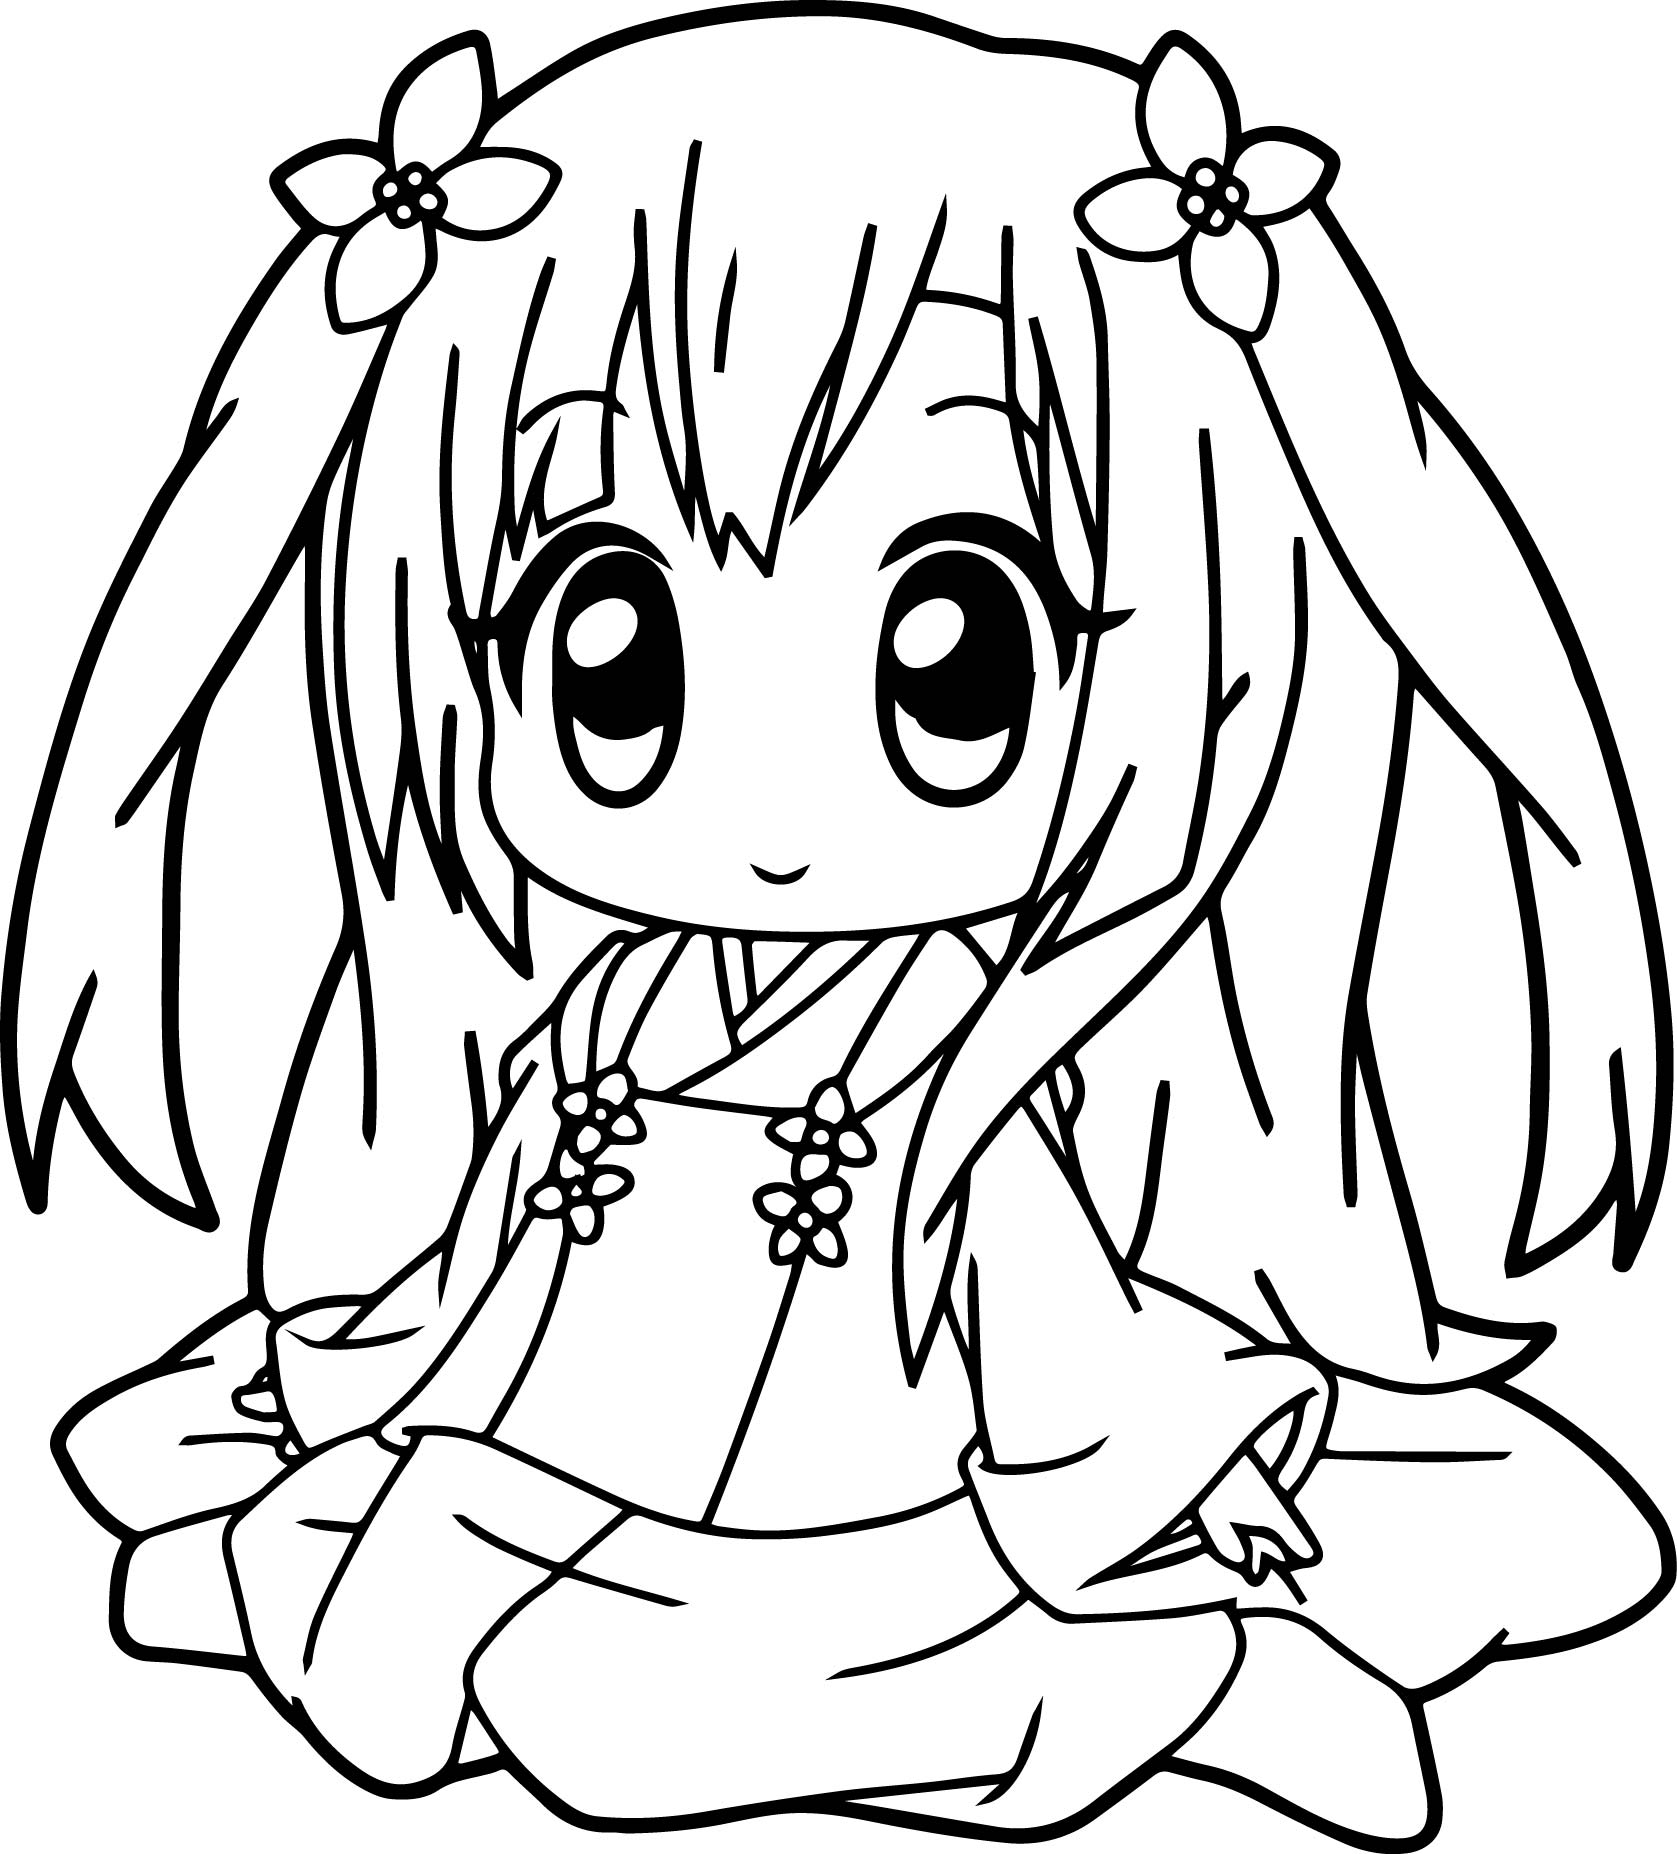 anime girl coloring sheets 1189 best anime coloring pages images on pinterest sheets anime coloring girl